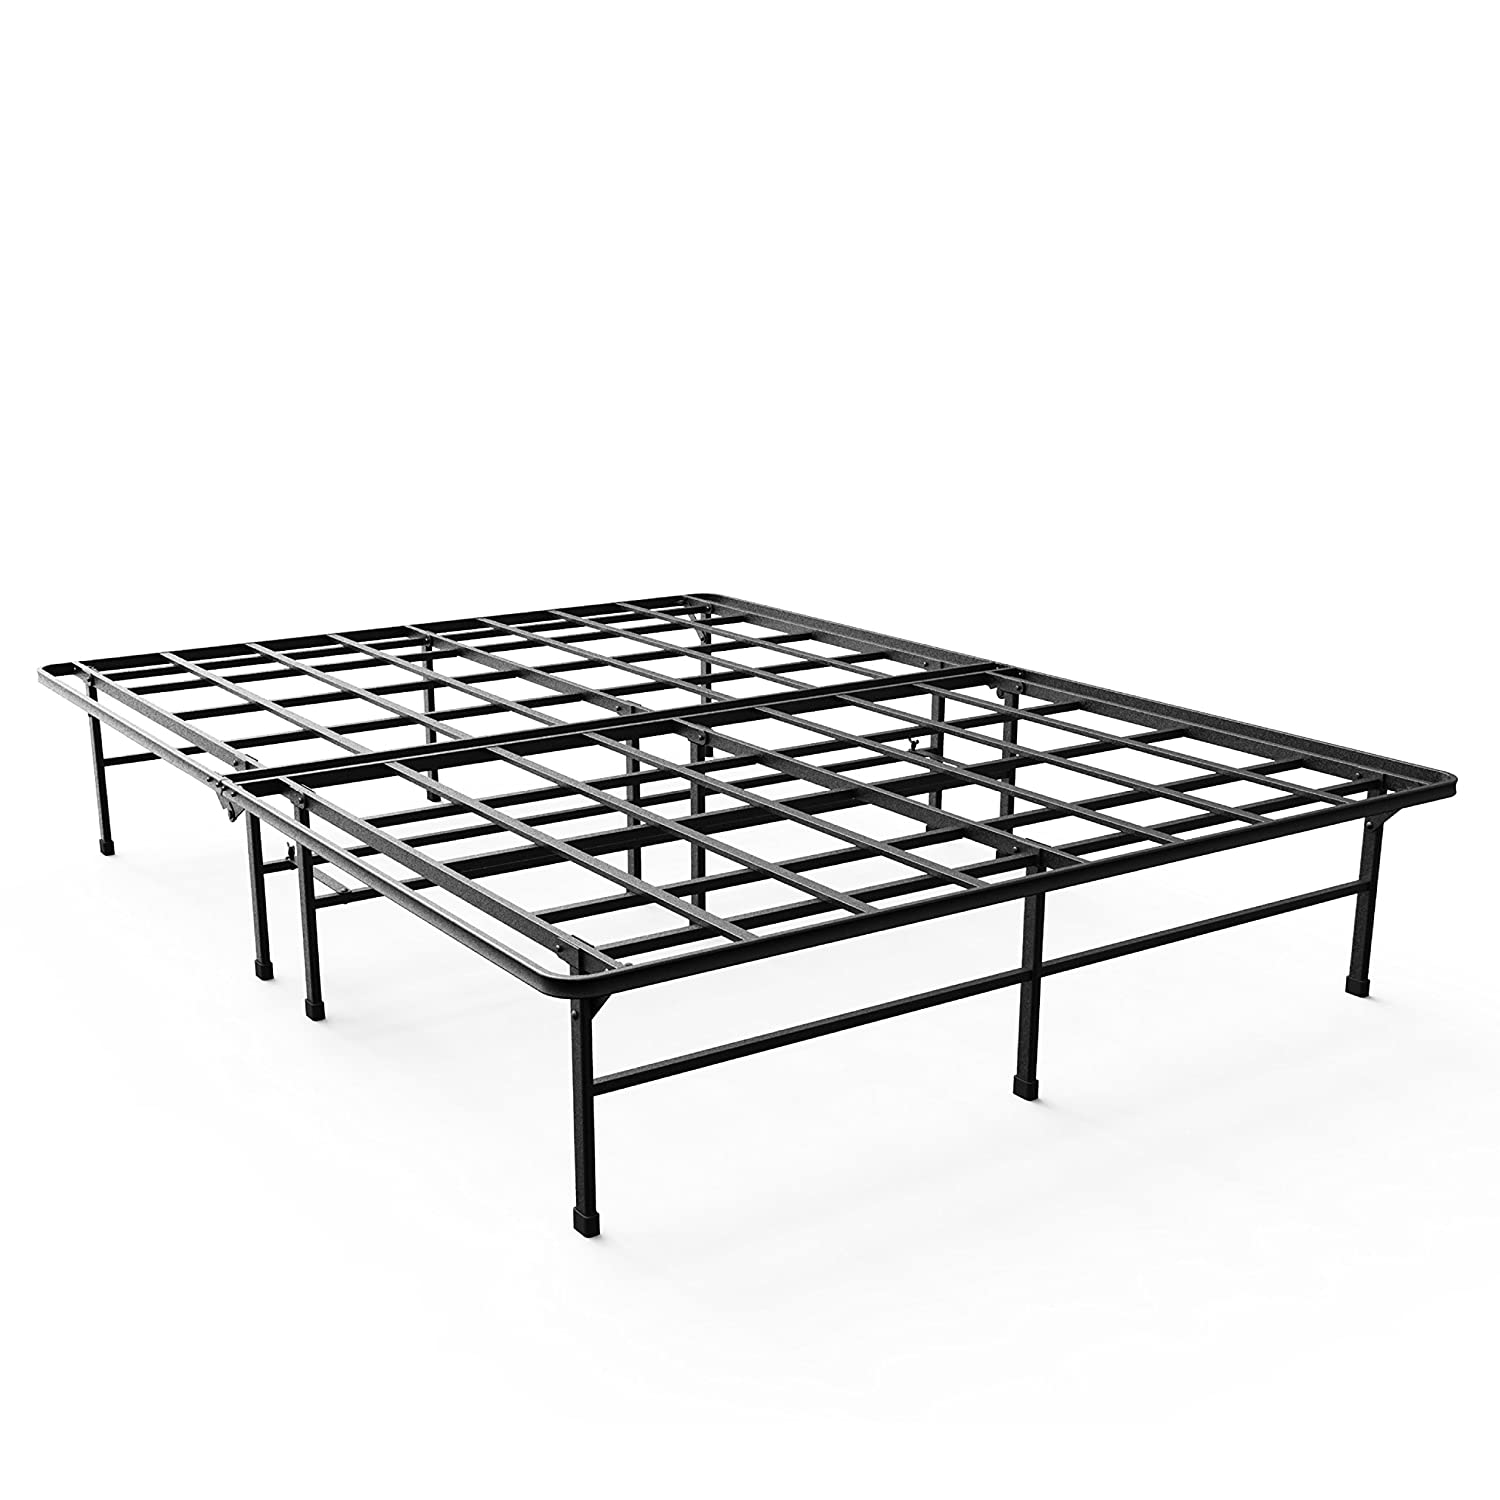 amazoncom zinus 14 inch elite smartbase mattress foundation for big tall extra strong support platform bed frame box spring replacement sturdy